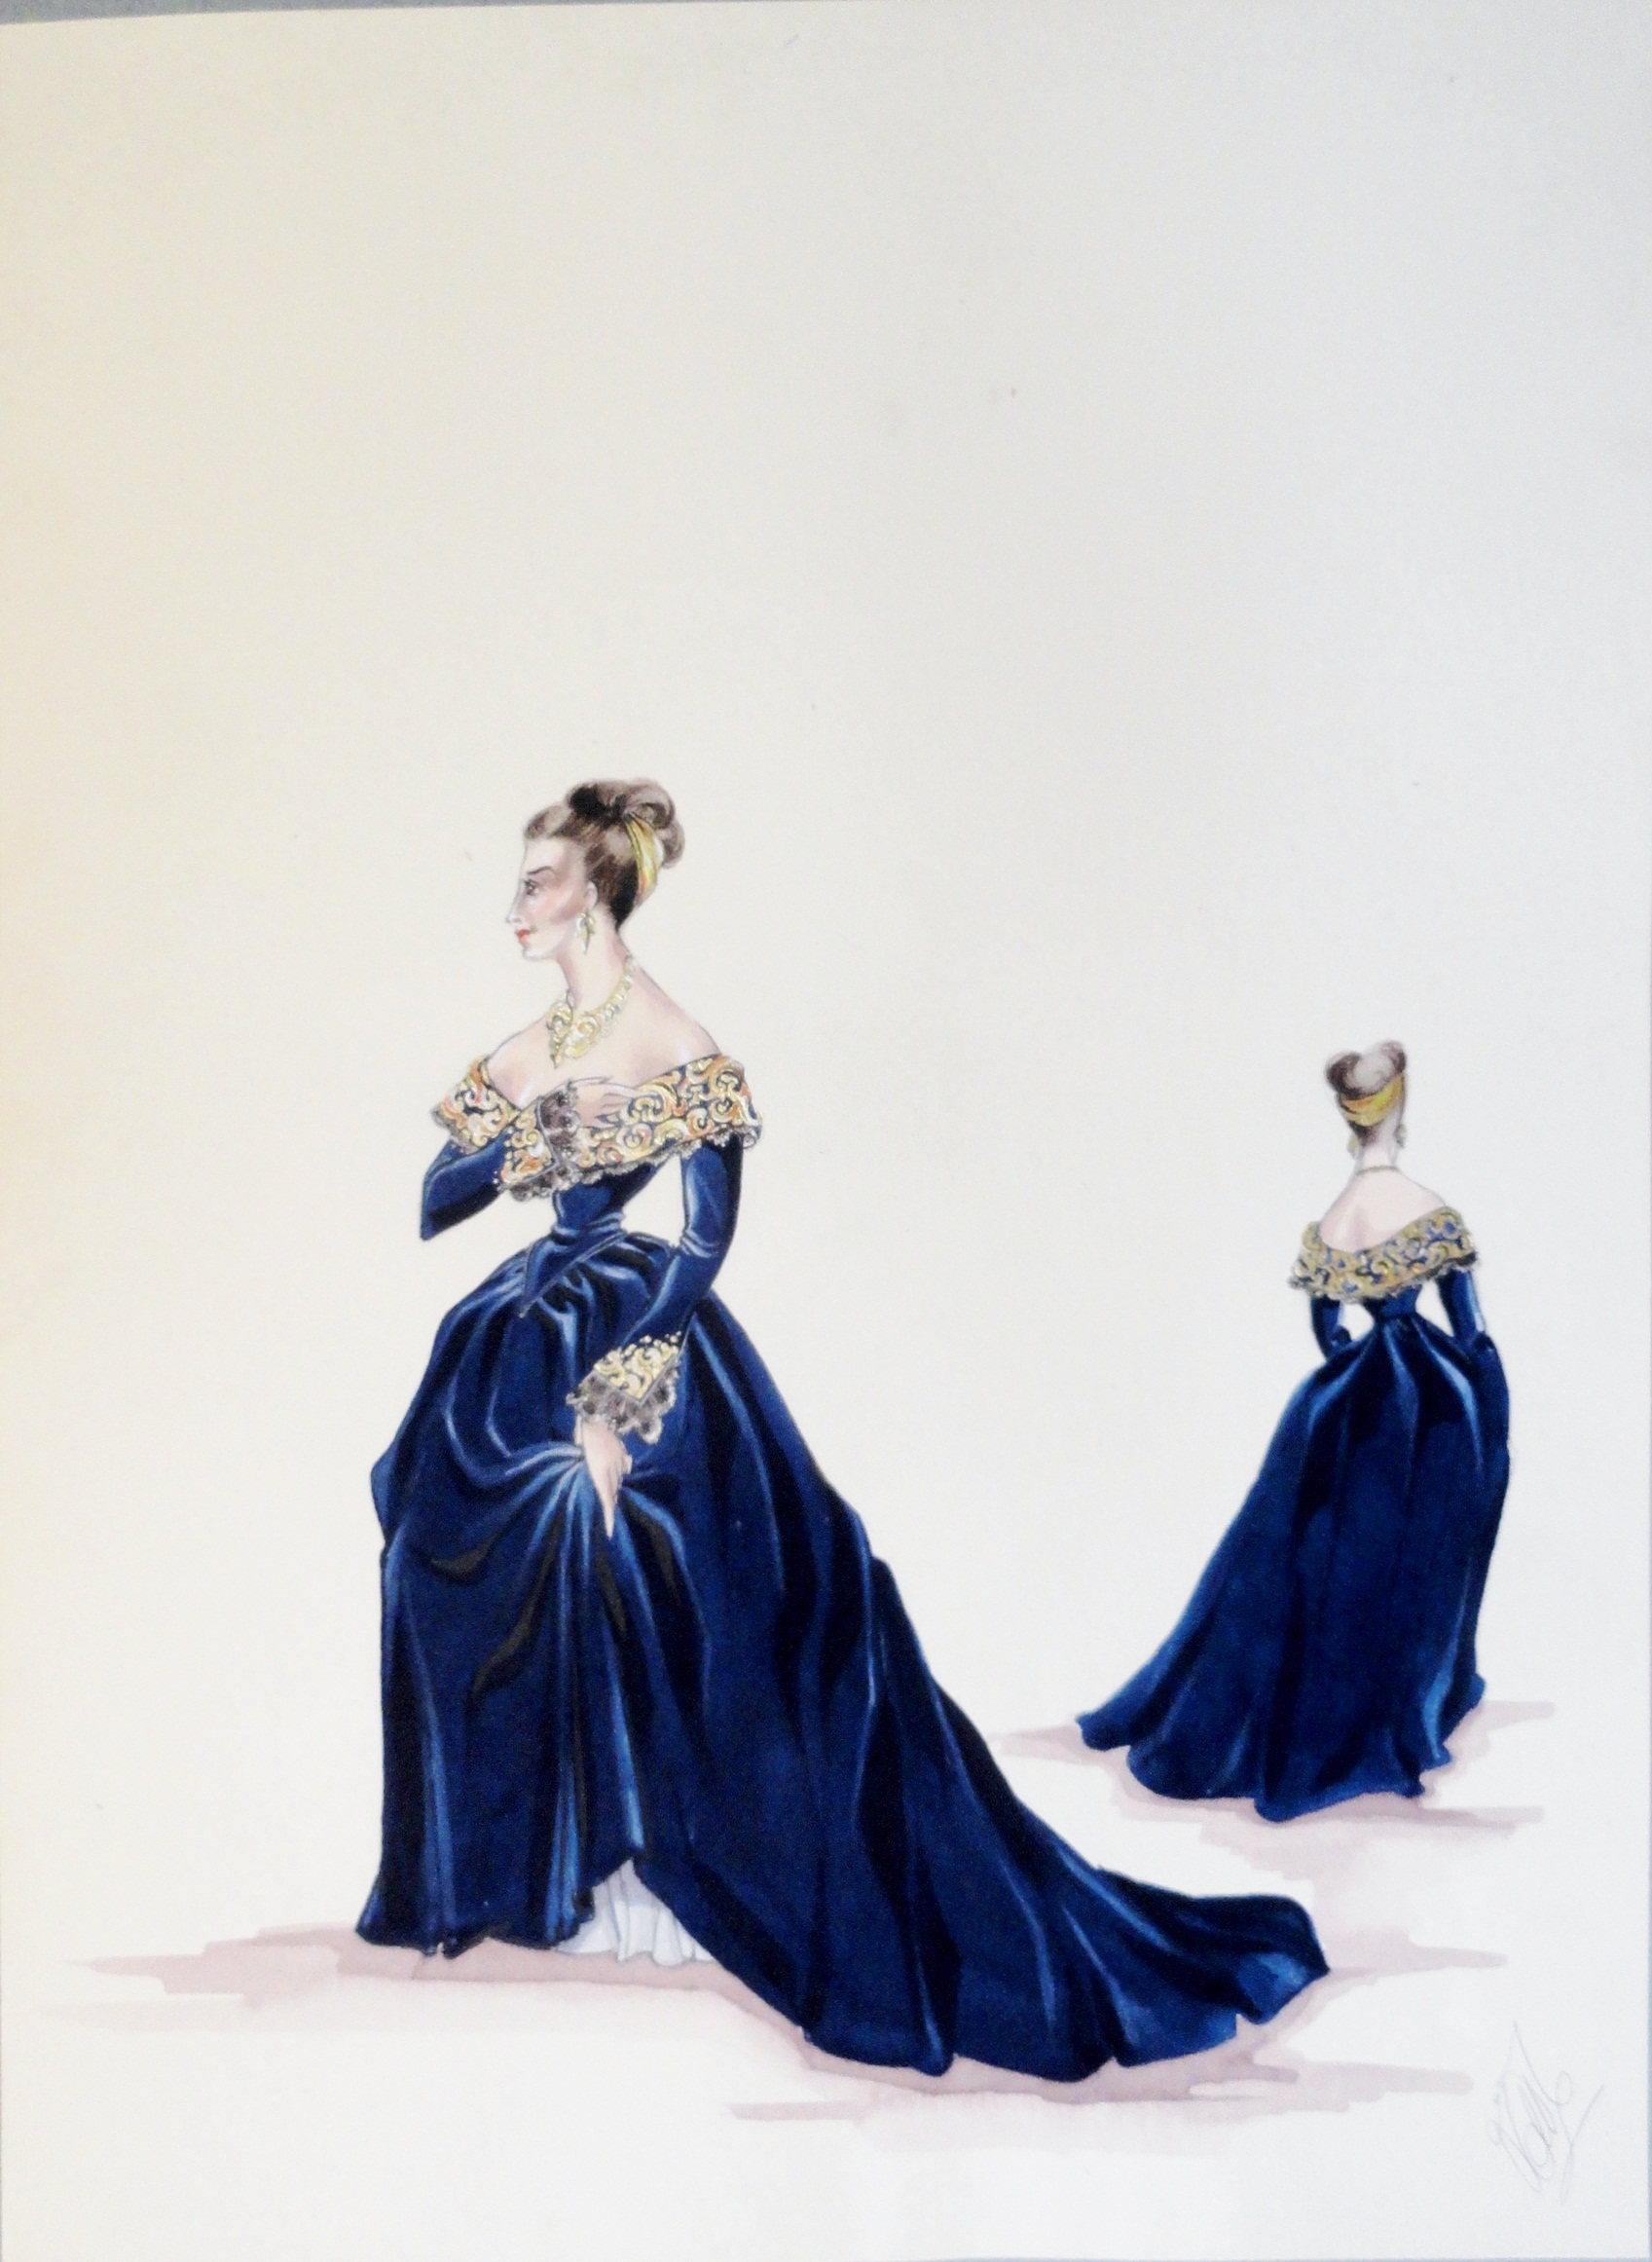 Rachel in blue velvet gown with gold leaf accents. Pen and Ink and Gouache. From the Rachel Portfolio by Owen Hyde Clark. $300.00.